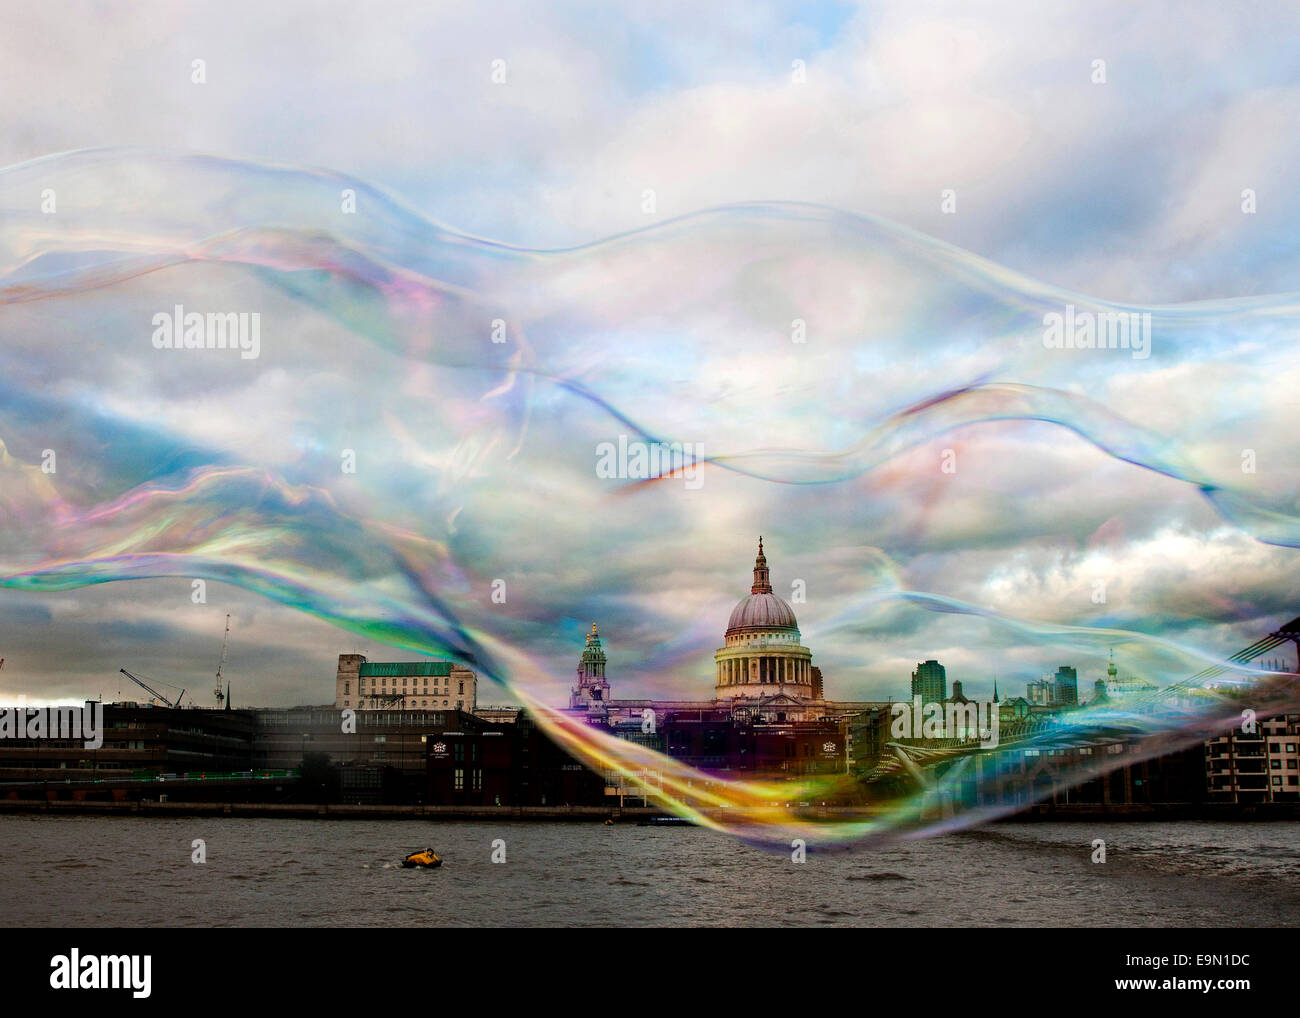 An abstract view of St Paul's Cathedral London in a bubble - Stock Image